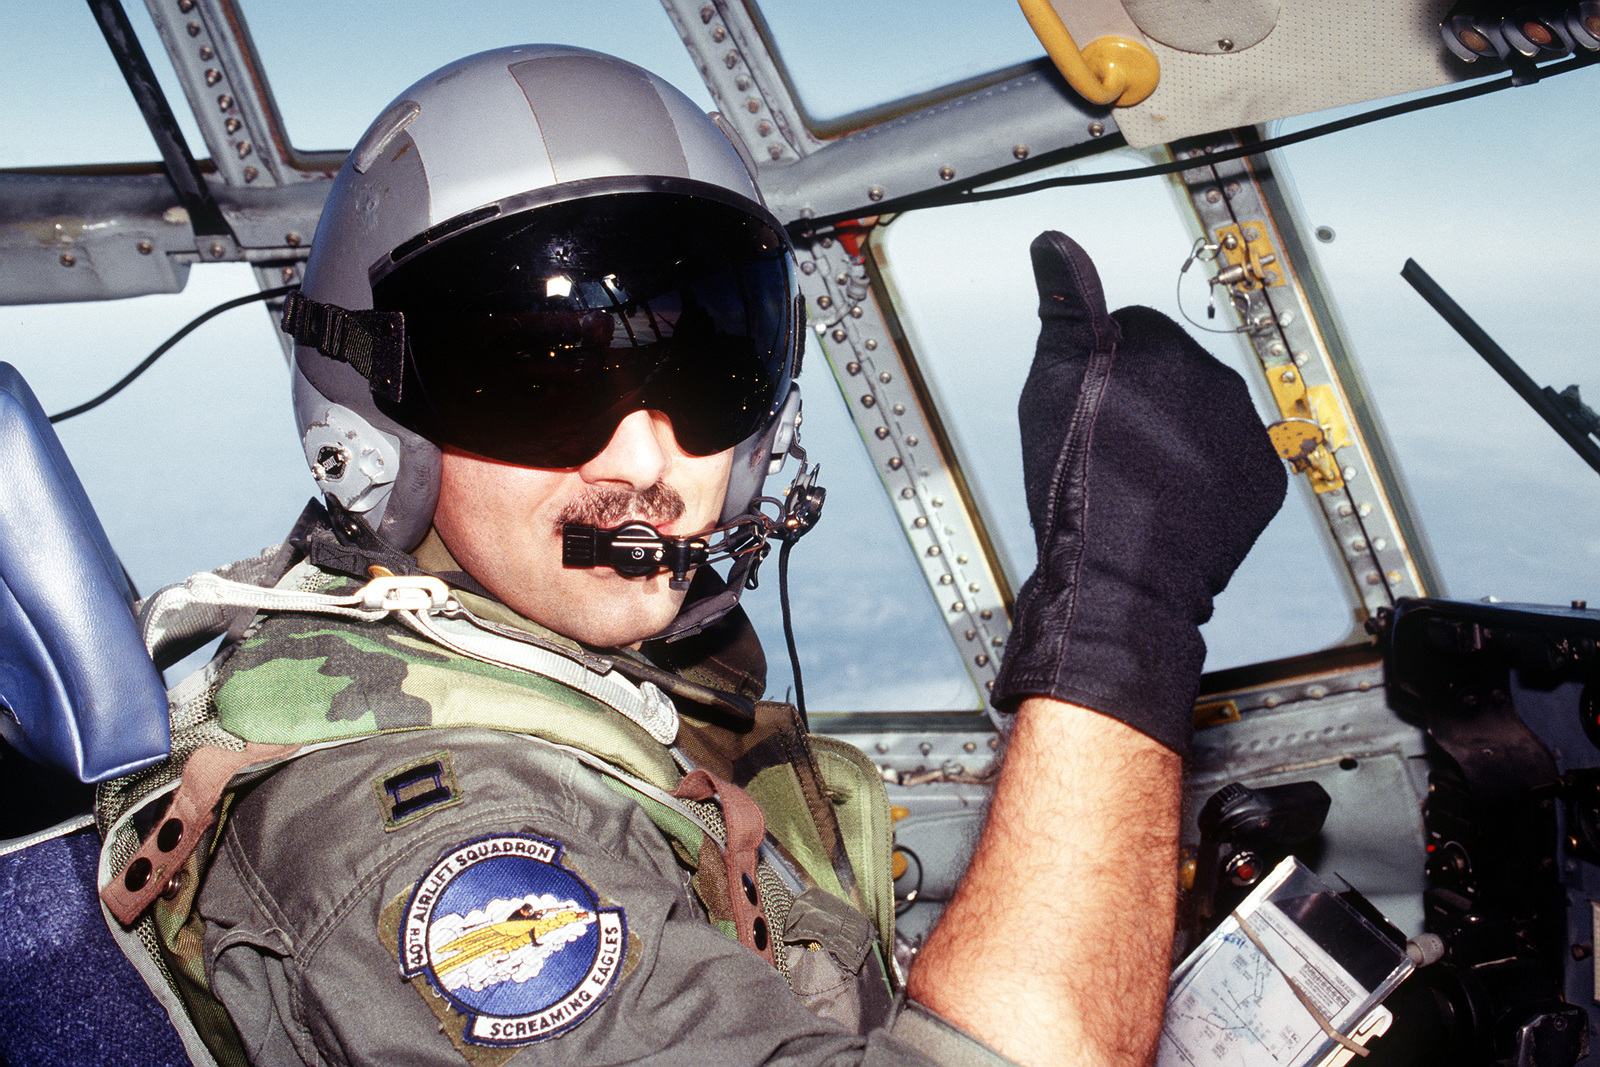 """C-130H Pilot, CAPT. Dan Dahger, assigned to the 40th Airlift Squadron (AS) gives the """"thumbs up"""" as the C-130H crew prepares to enter the war torn area of Tuzla, Bosnia. The 40th AS is assigned to the 7th Wing, Dyess Air Force Base, Texas and is deployed to Ramstein to support Operations Joint Endeavor and Joint Guard from 4 Dec. 1996 to 23 Jan. 1997. Exact Date Shot Unknown"""